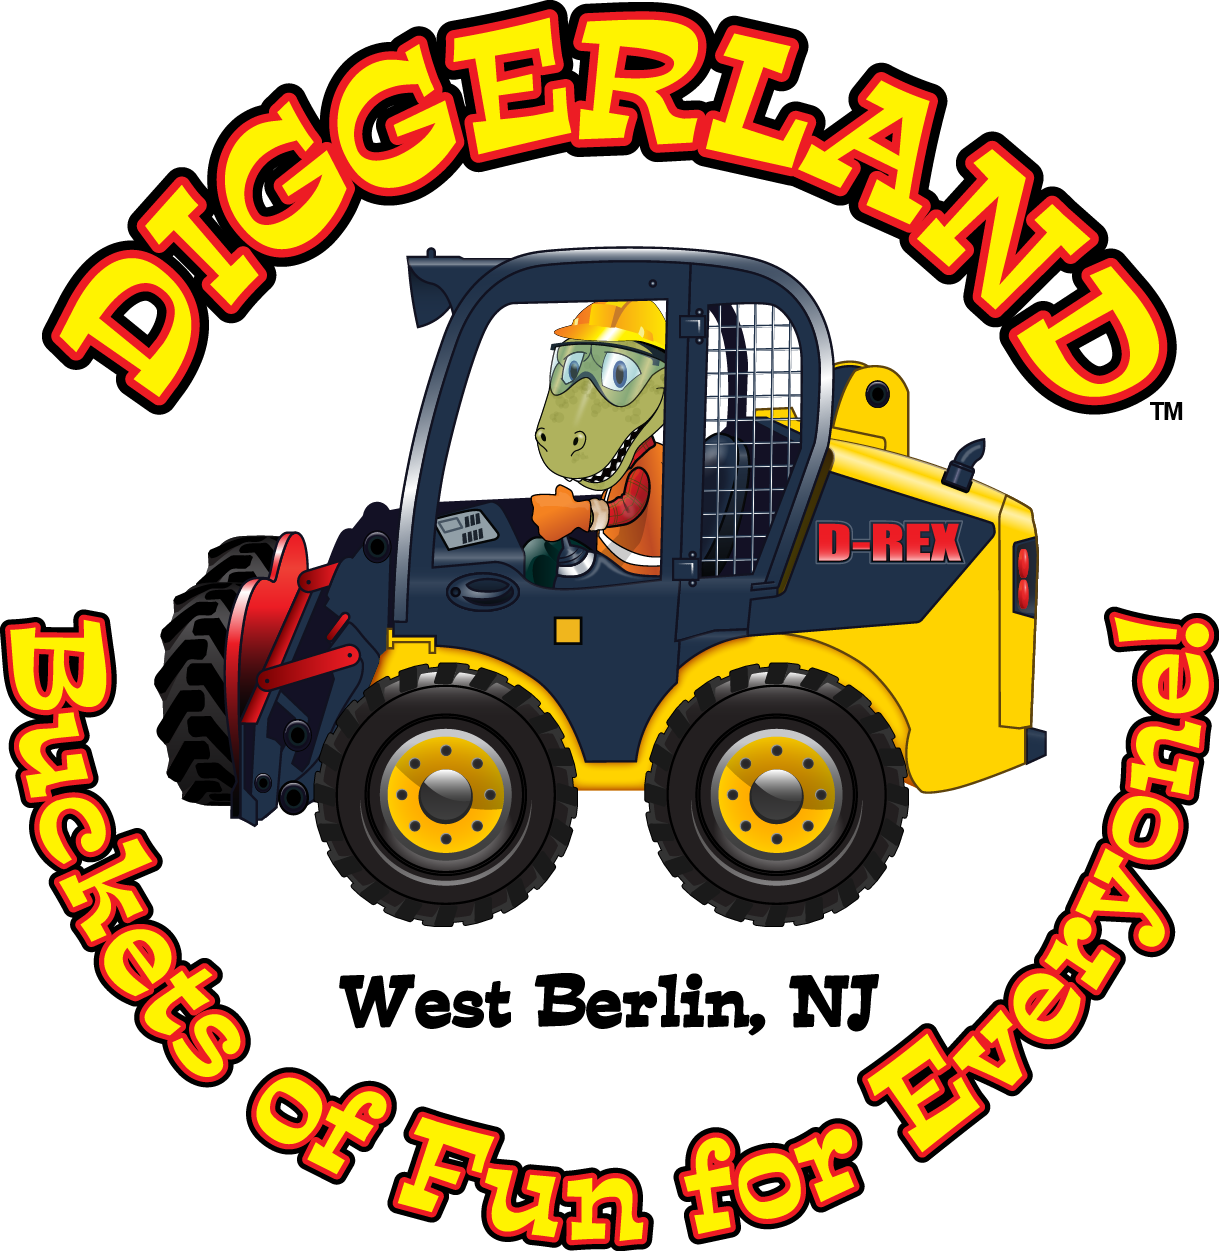 Diggerland - Birthday Party